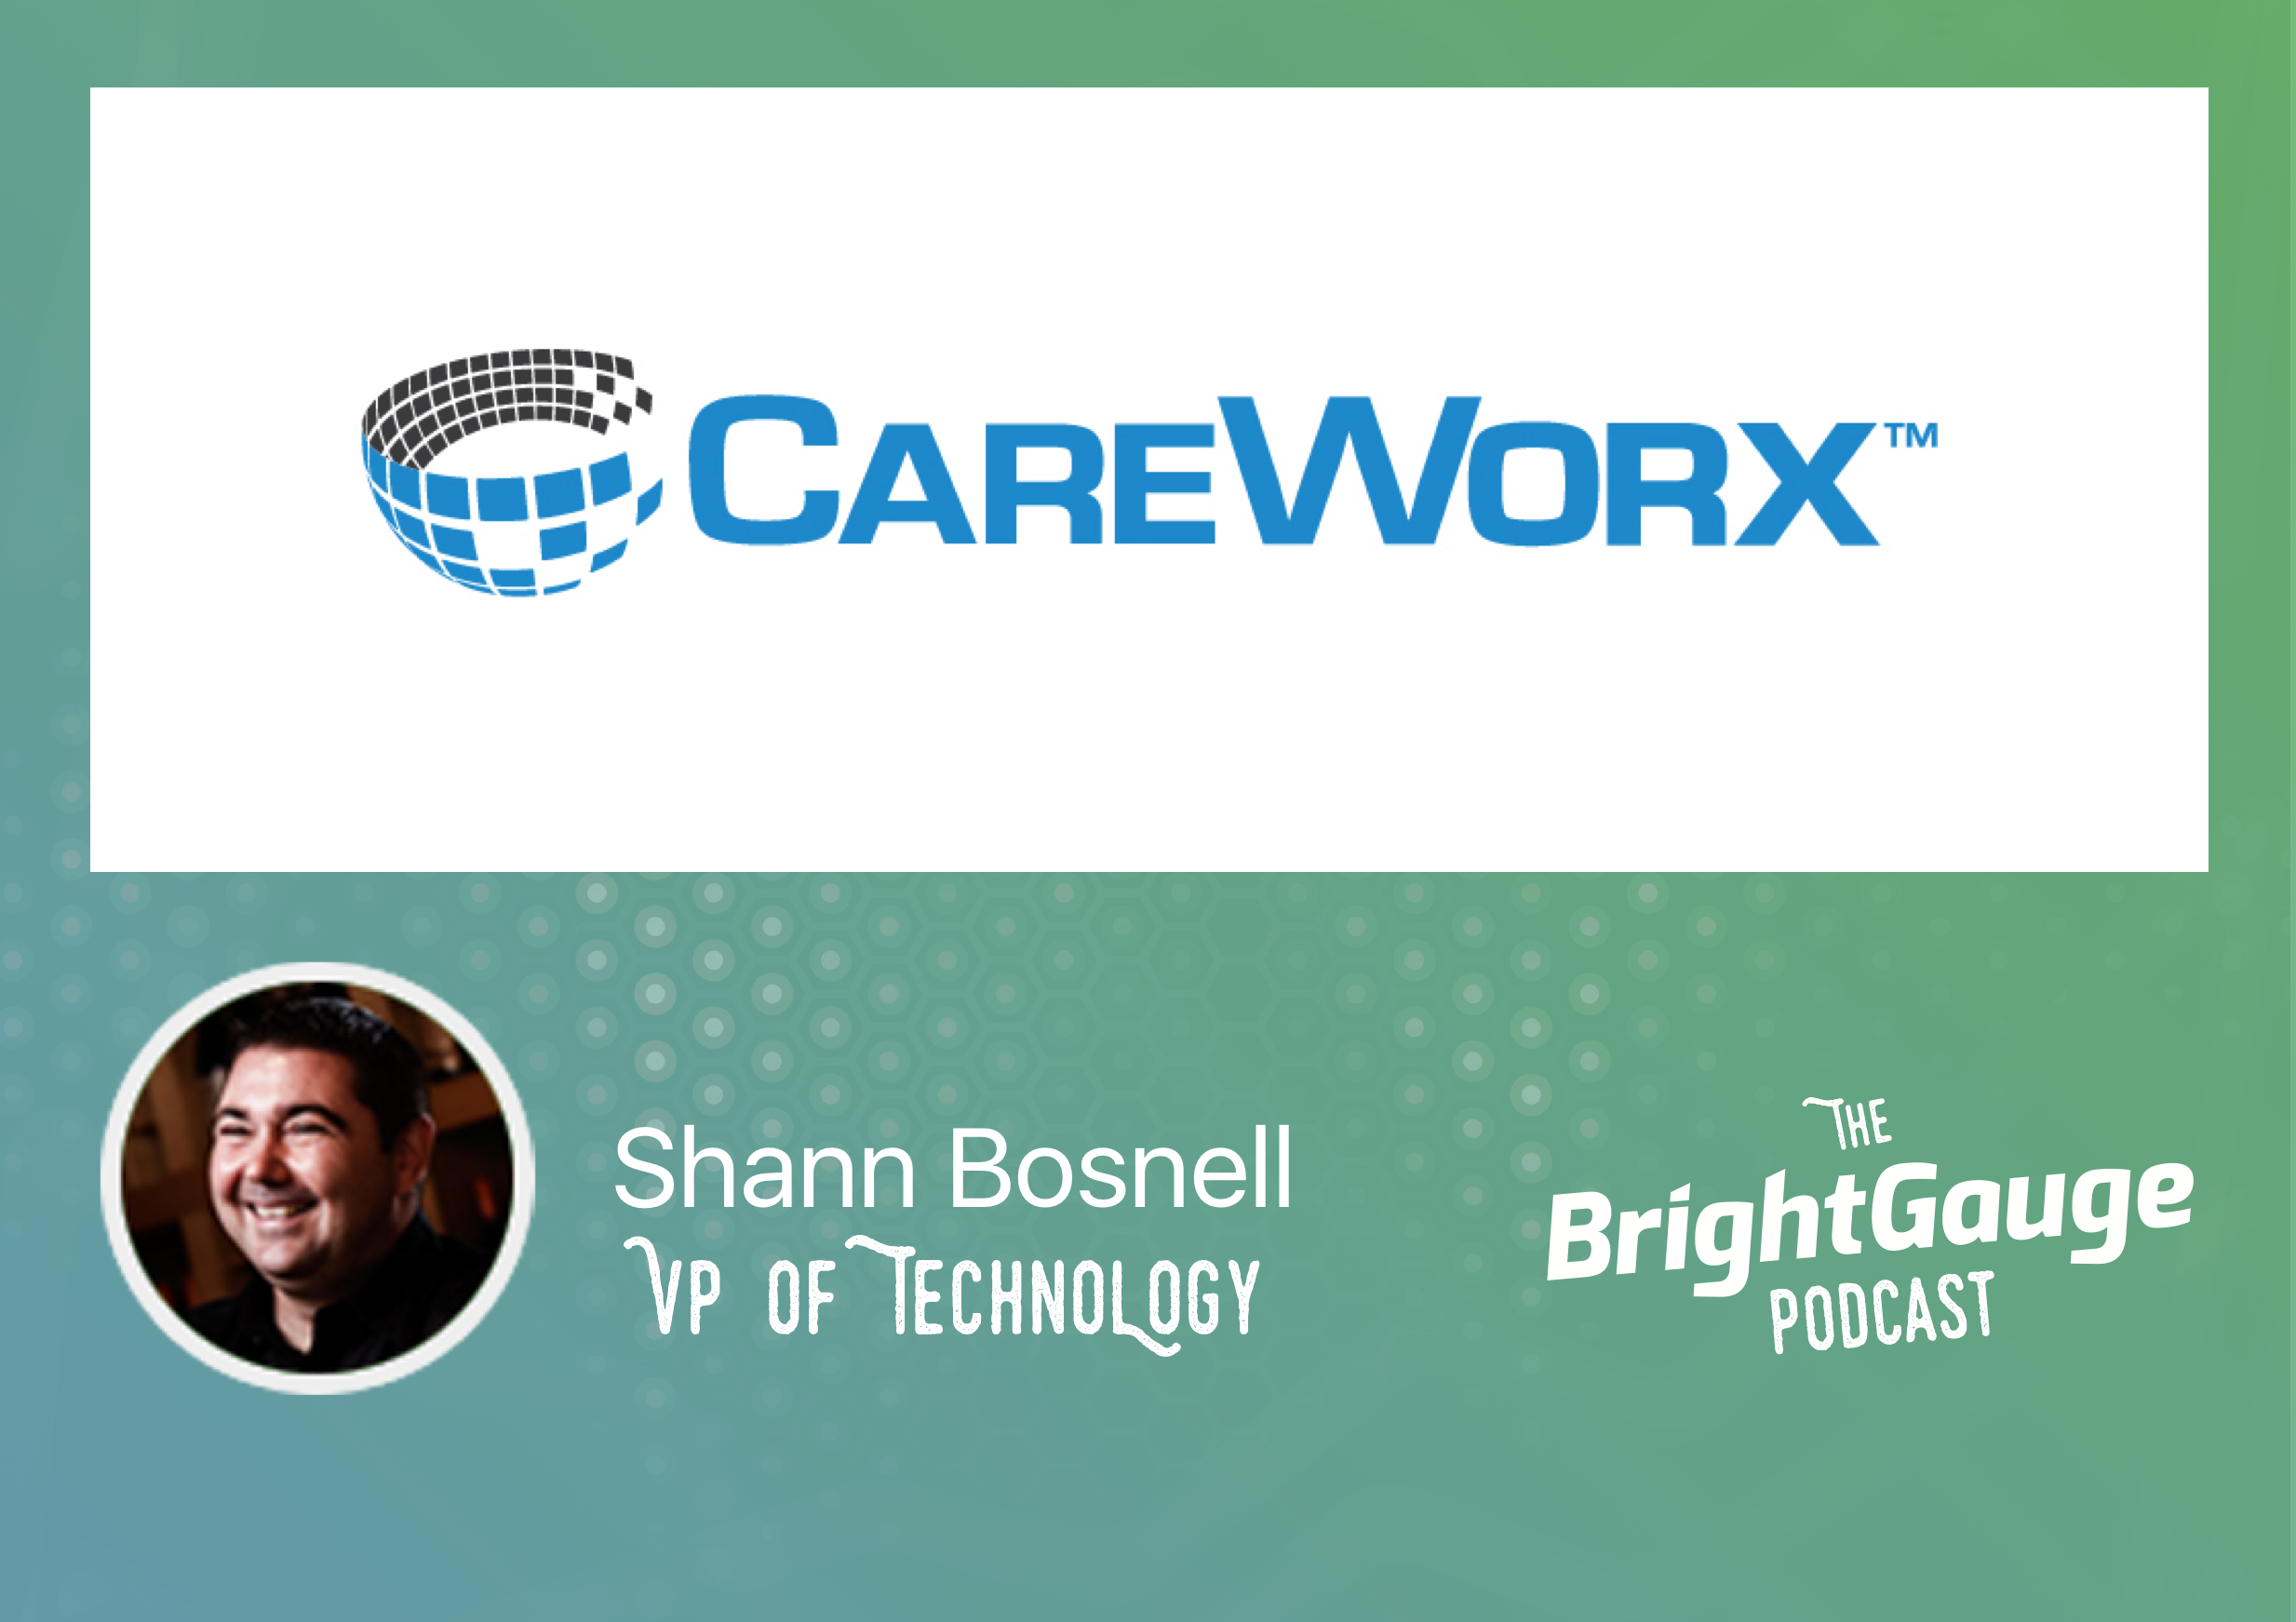 [Podcast] Episode 19 with Shann Bosnell of CareWorx